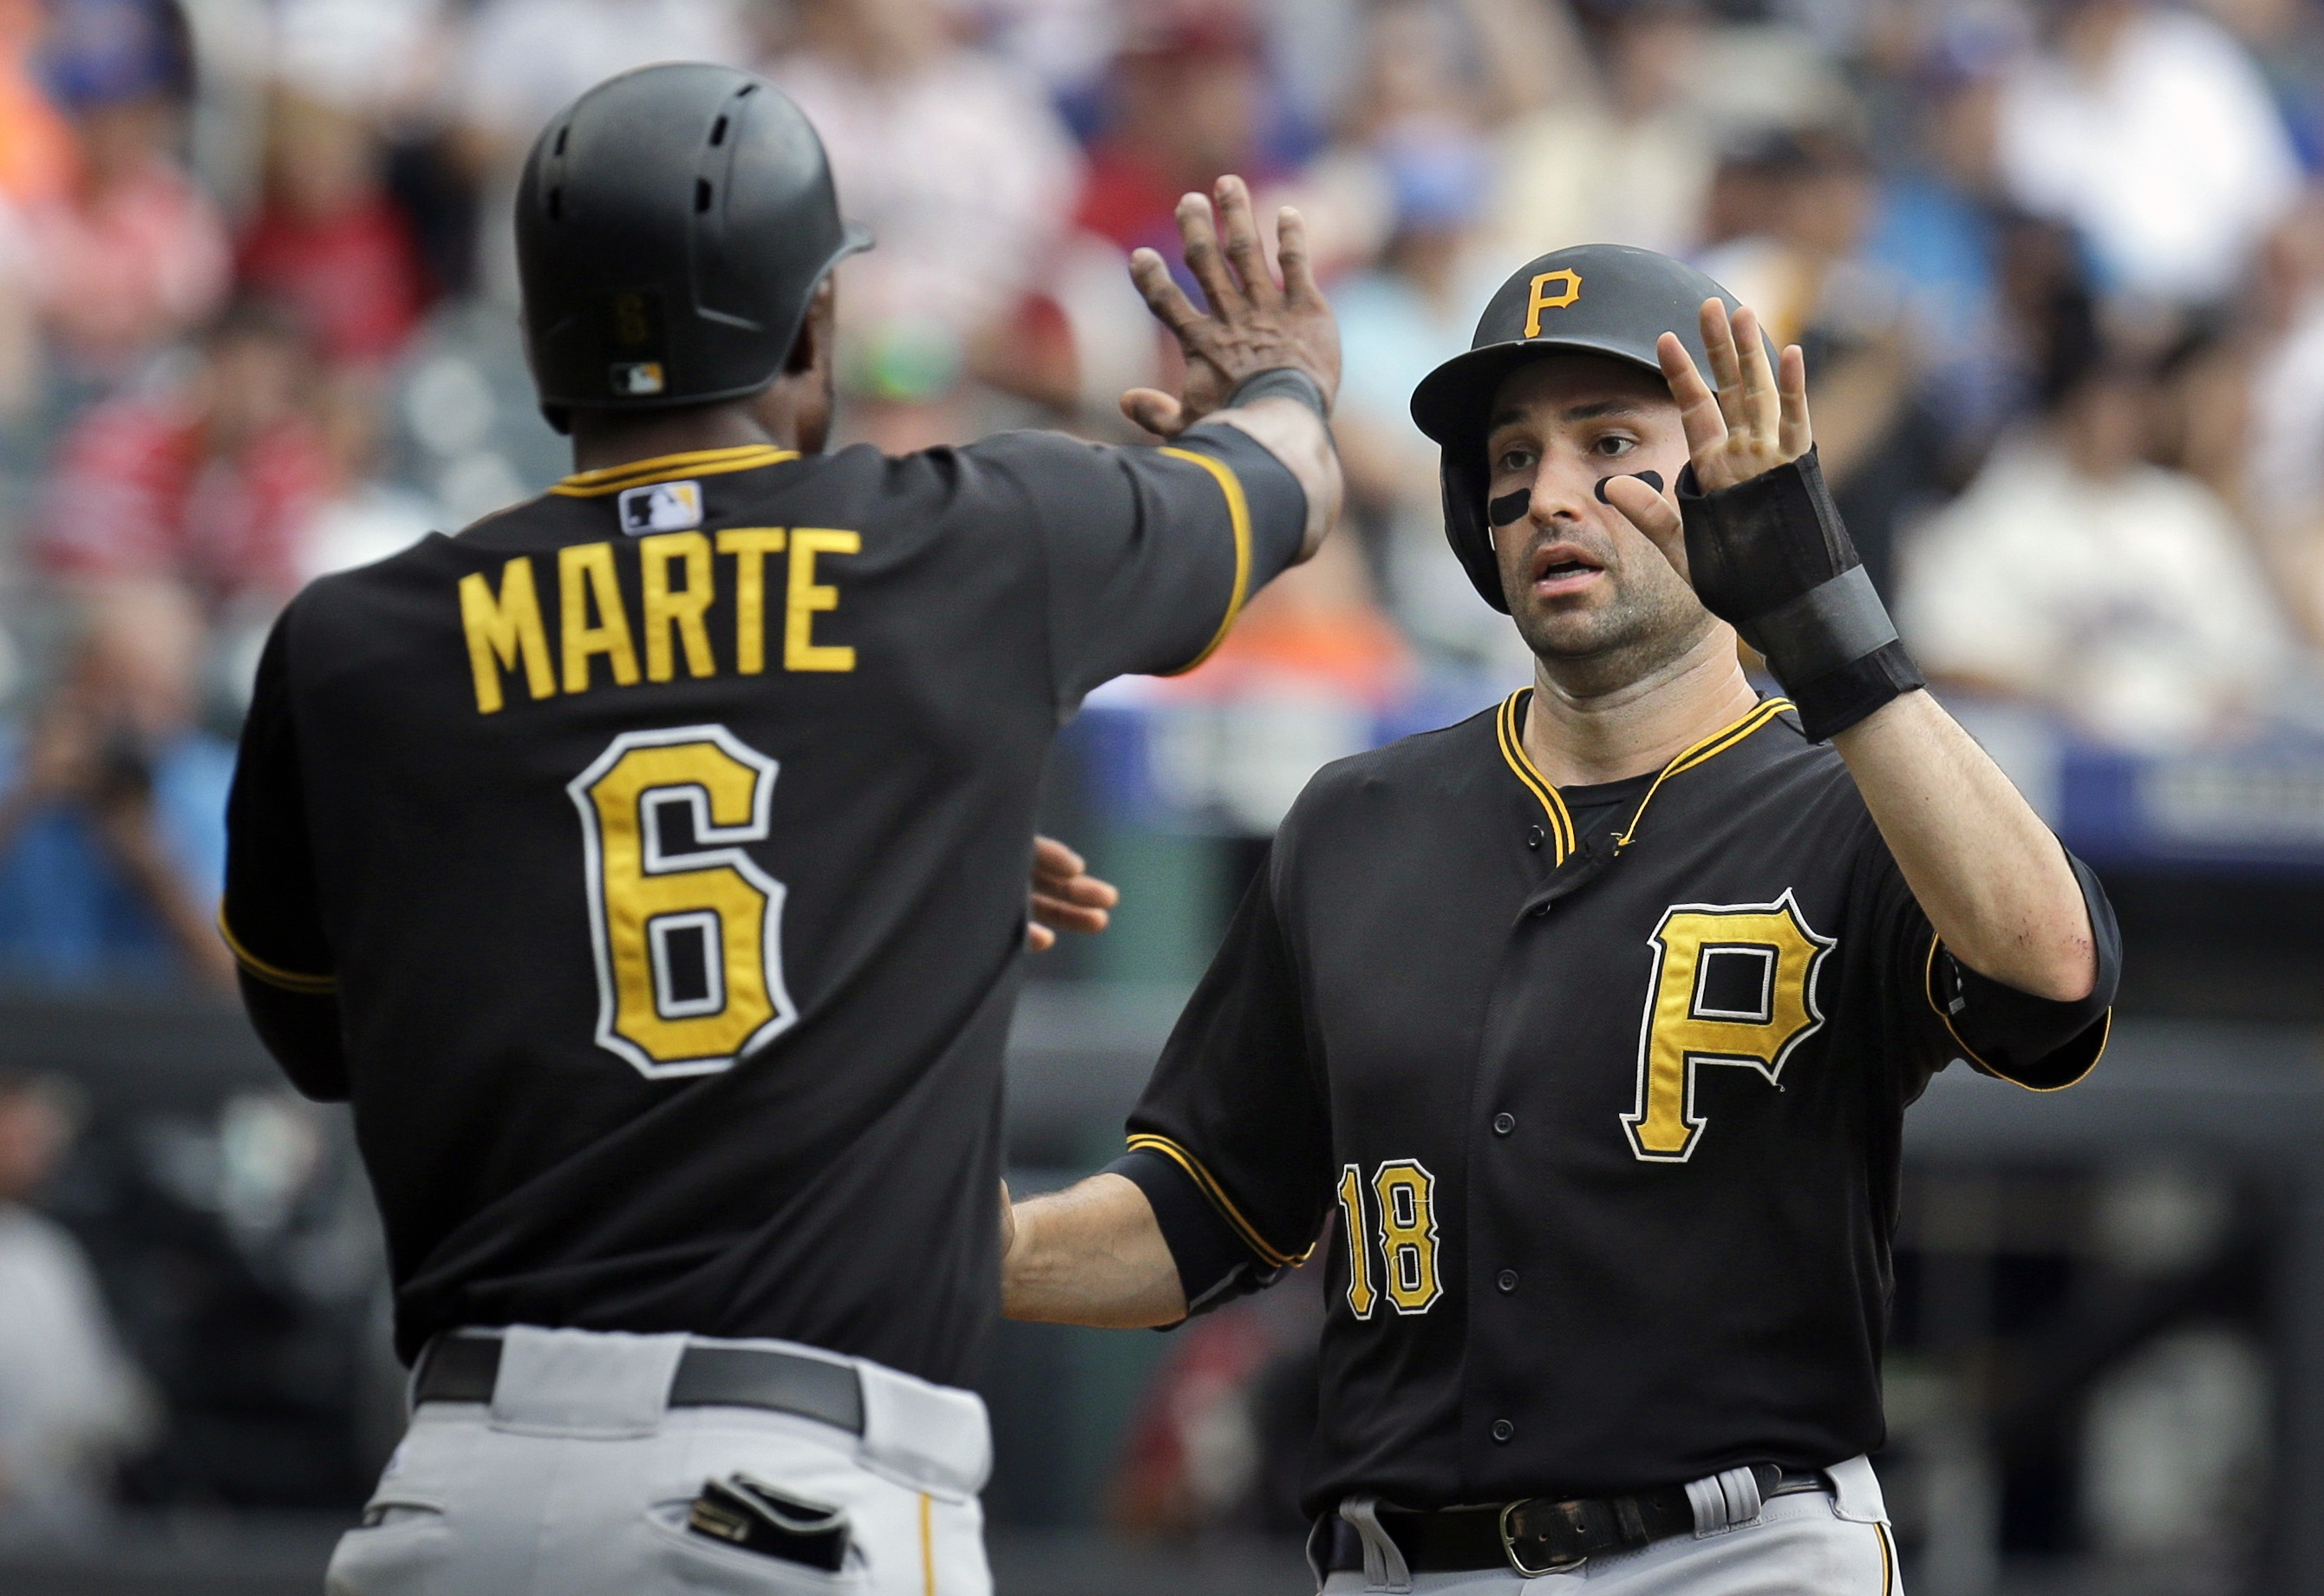 Pittsburgh Pirates' Neil Walker, right, and Starling Marte celebrate after scoring on a double hit by Aramis Ramirez during the eighth inning of the baseball game against the New York Mets at Citi Field, Sunday, Aug. 16, 2015, in New York. (AP Photo/Seth